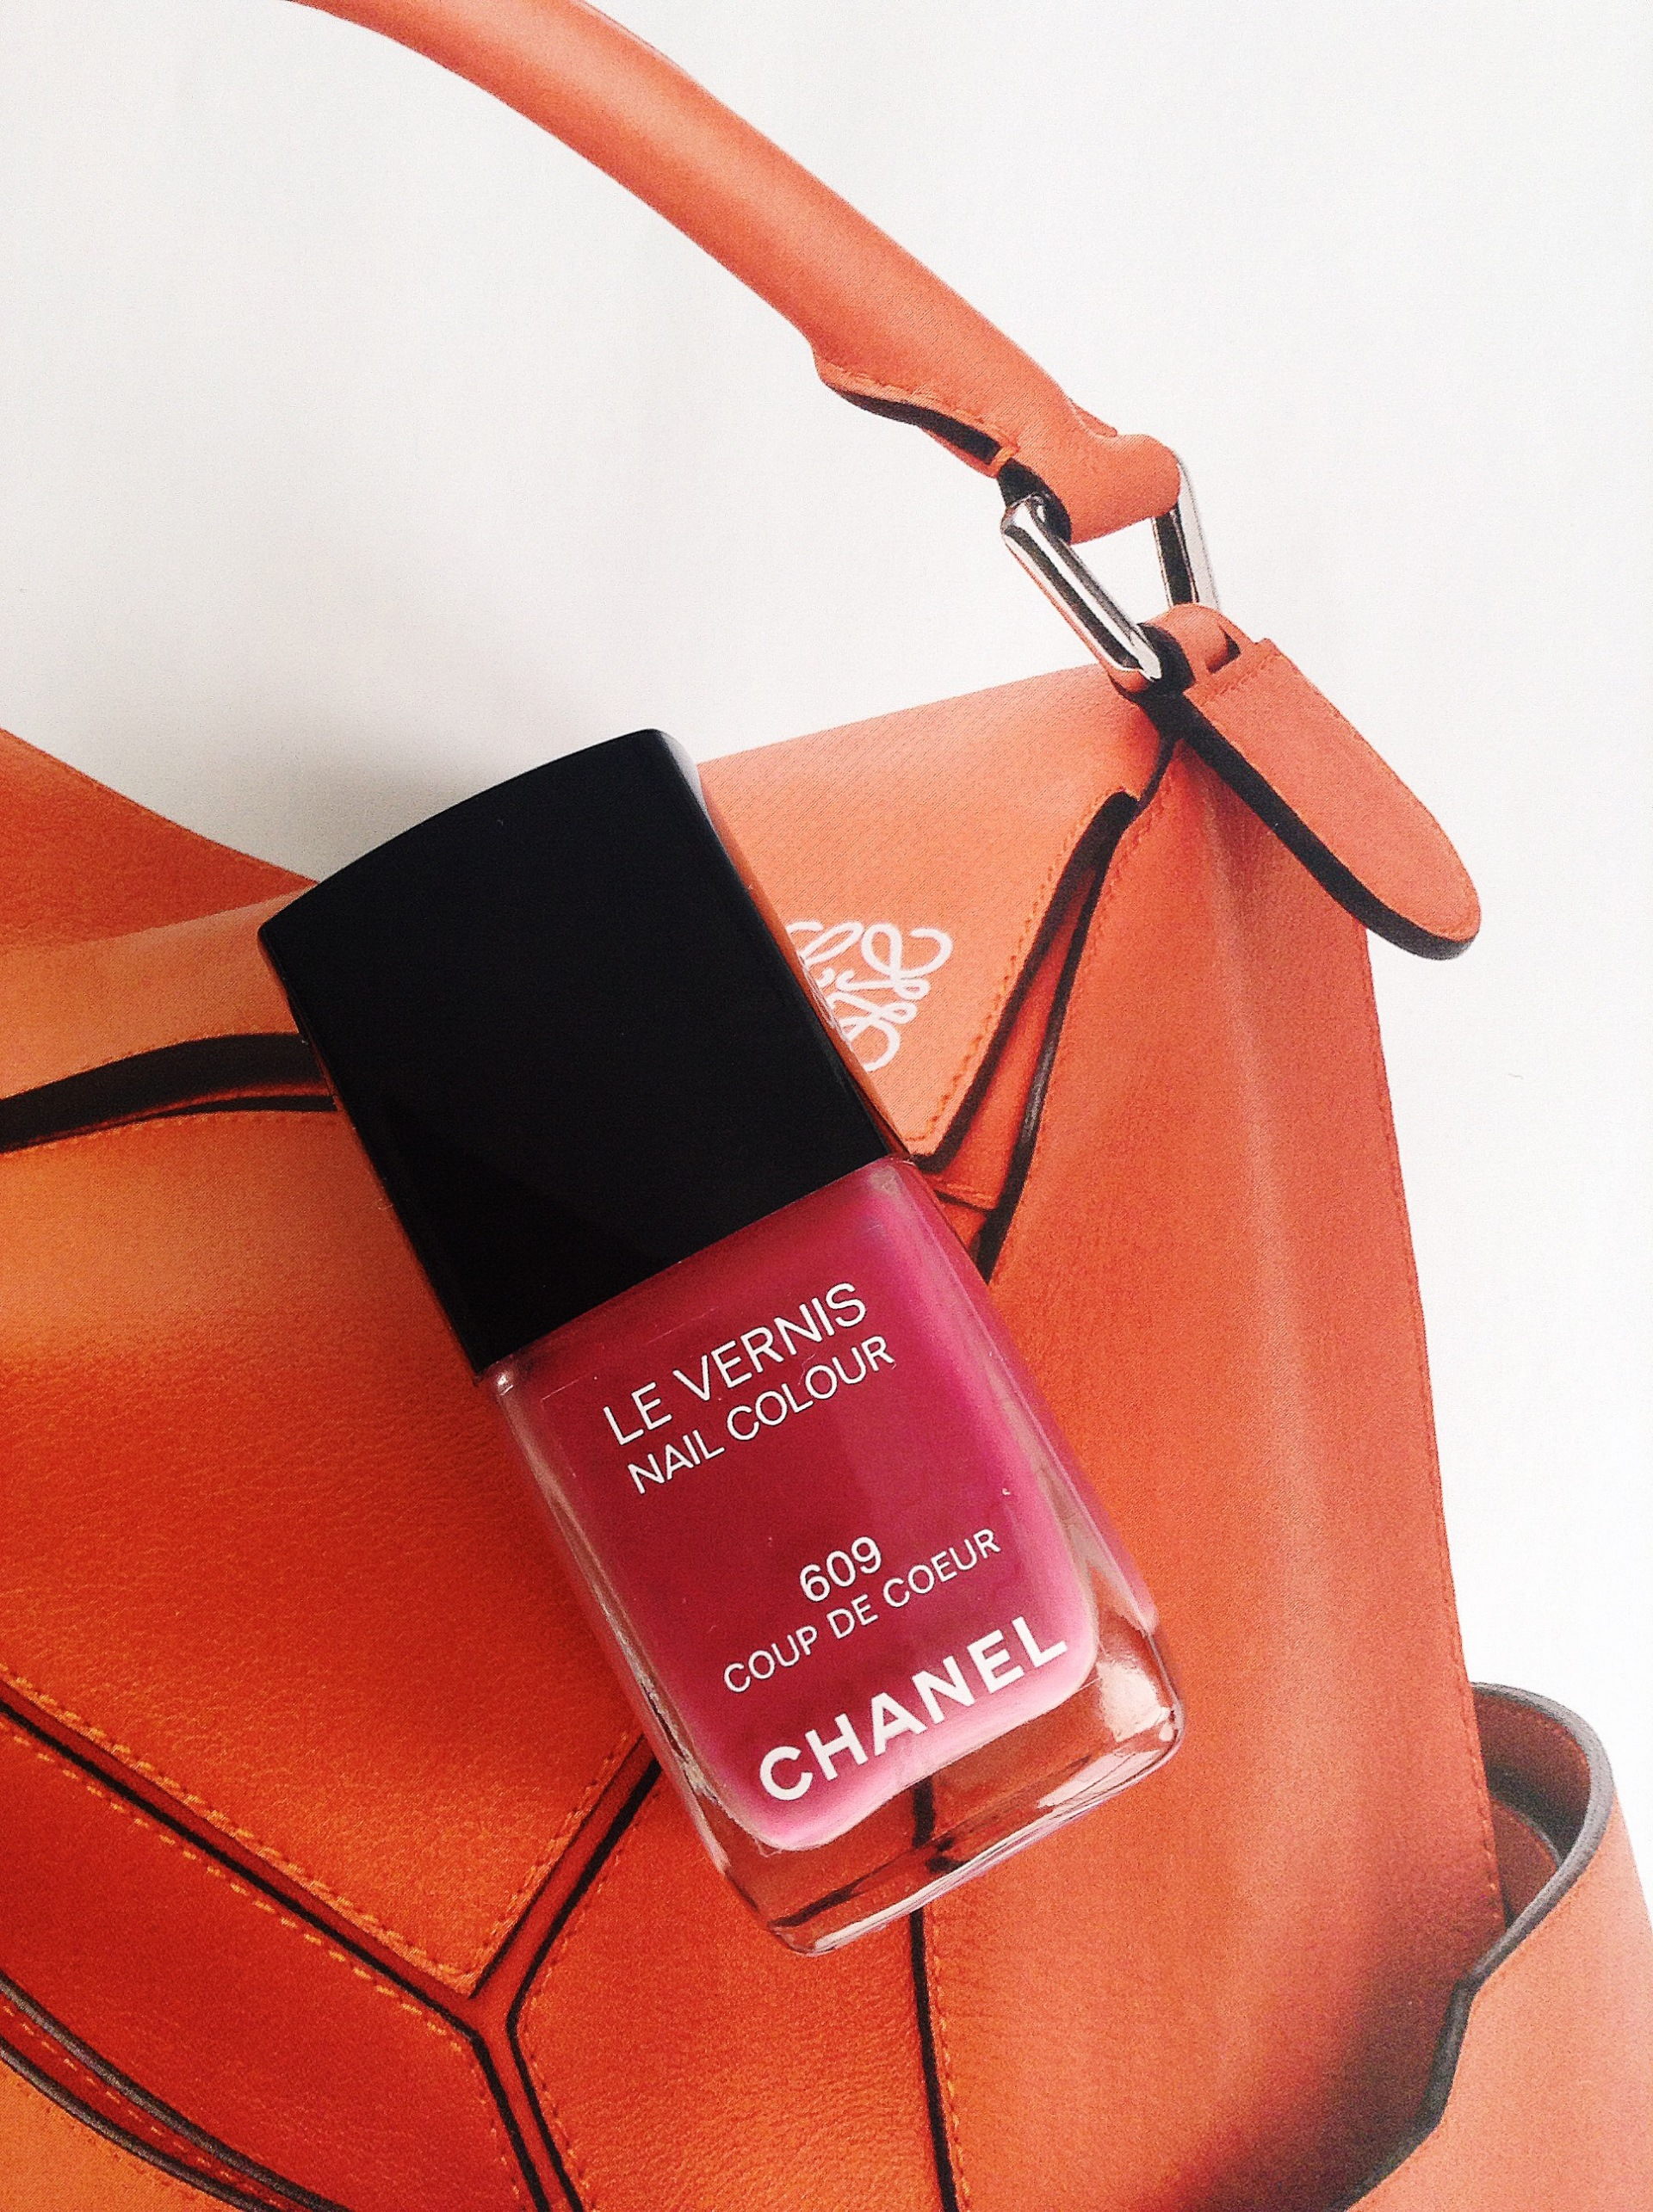 Chanel pink nail varnish. Blush London